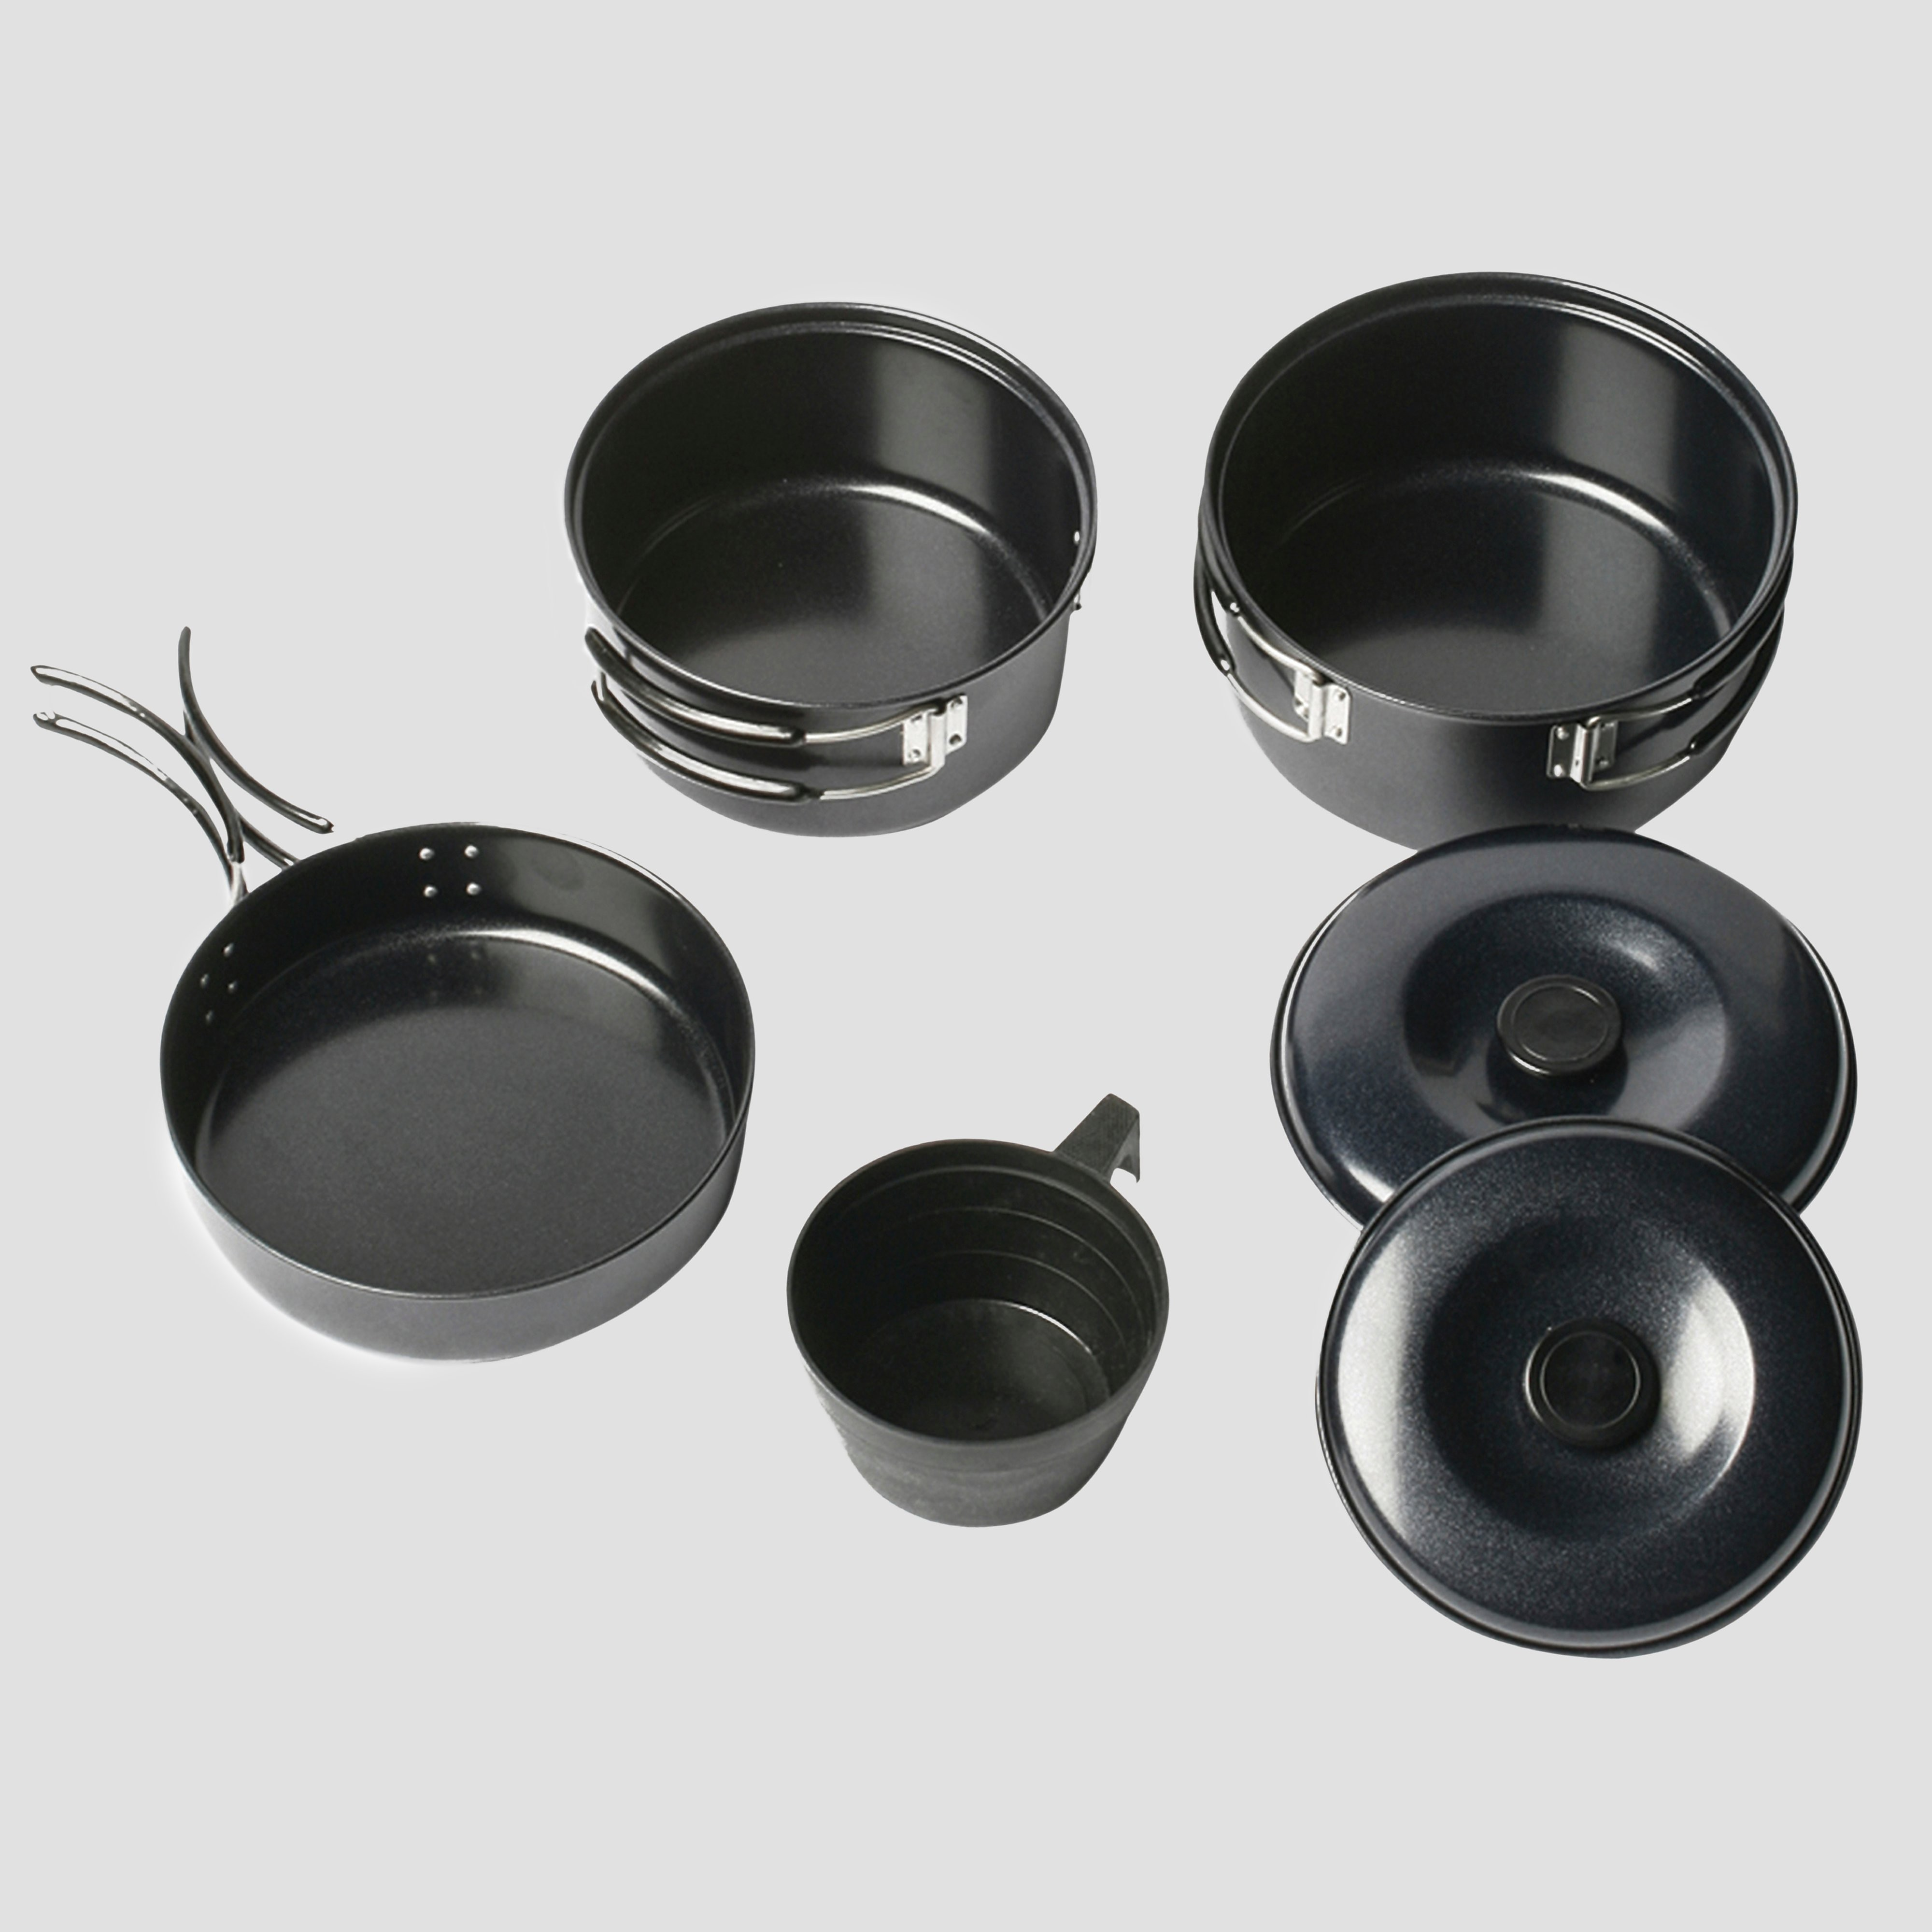 Vango Non-Stick Cook Kit (1 Person)